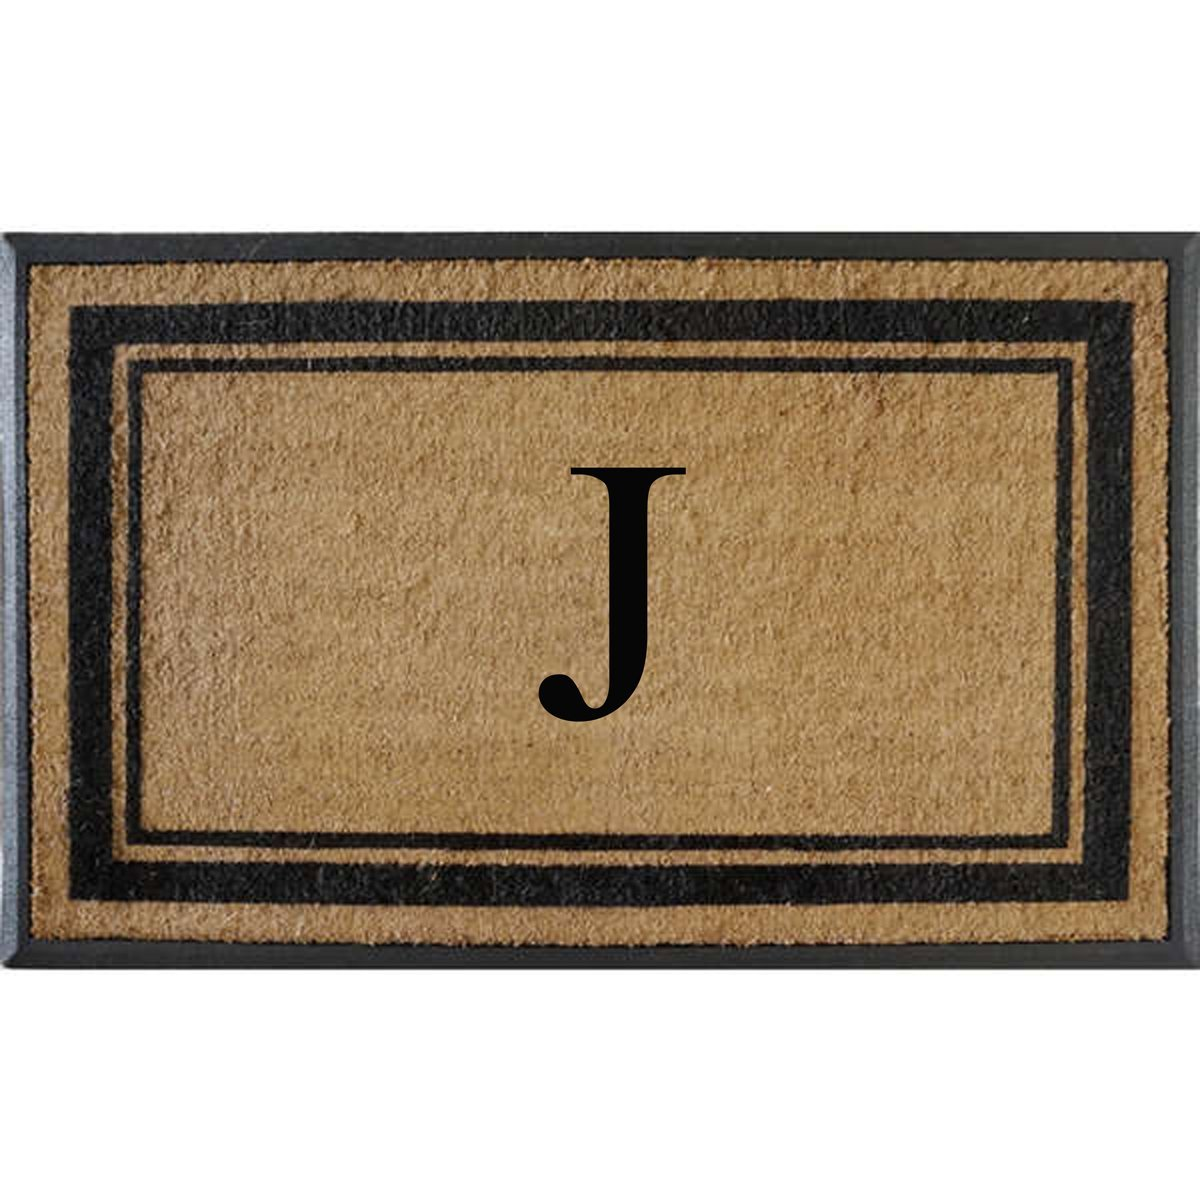 First Impressions Markham Border Double Door, Doormat, Monogrammed J, X-Large by A1 Home Collections